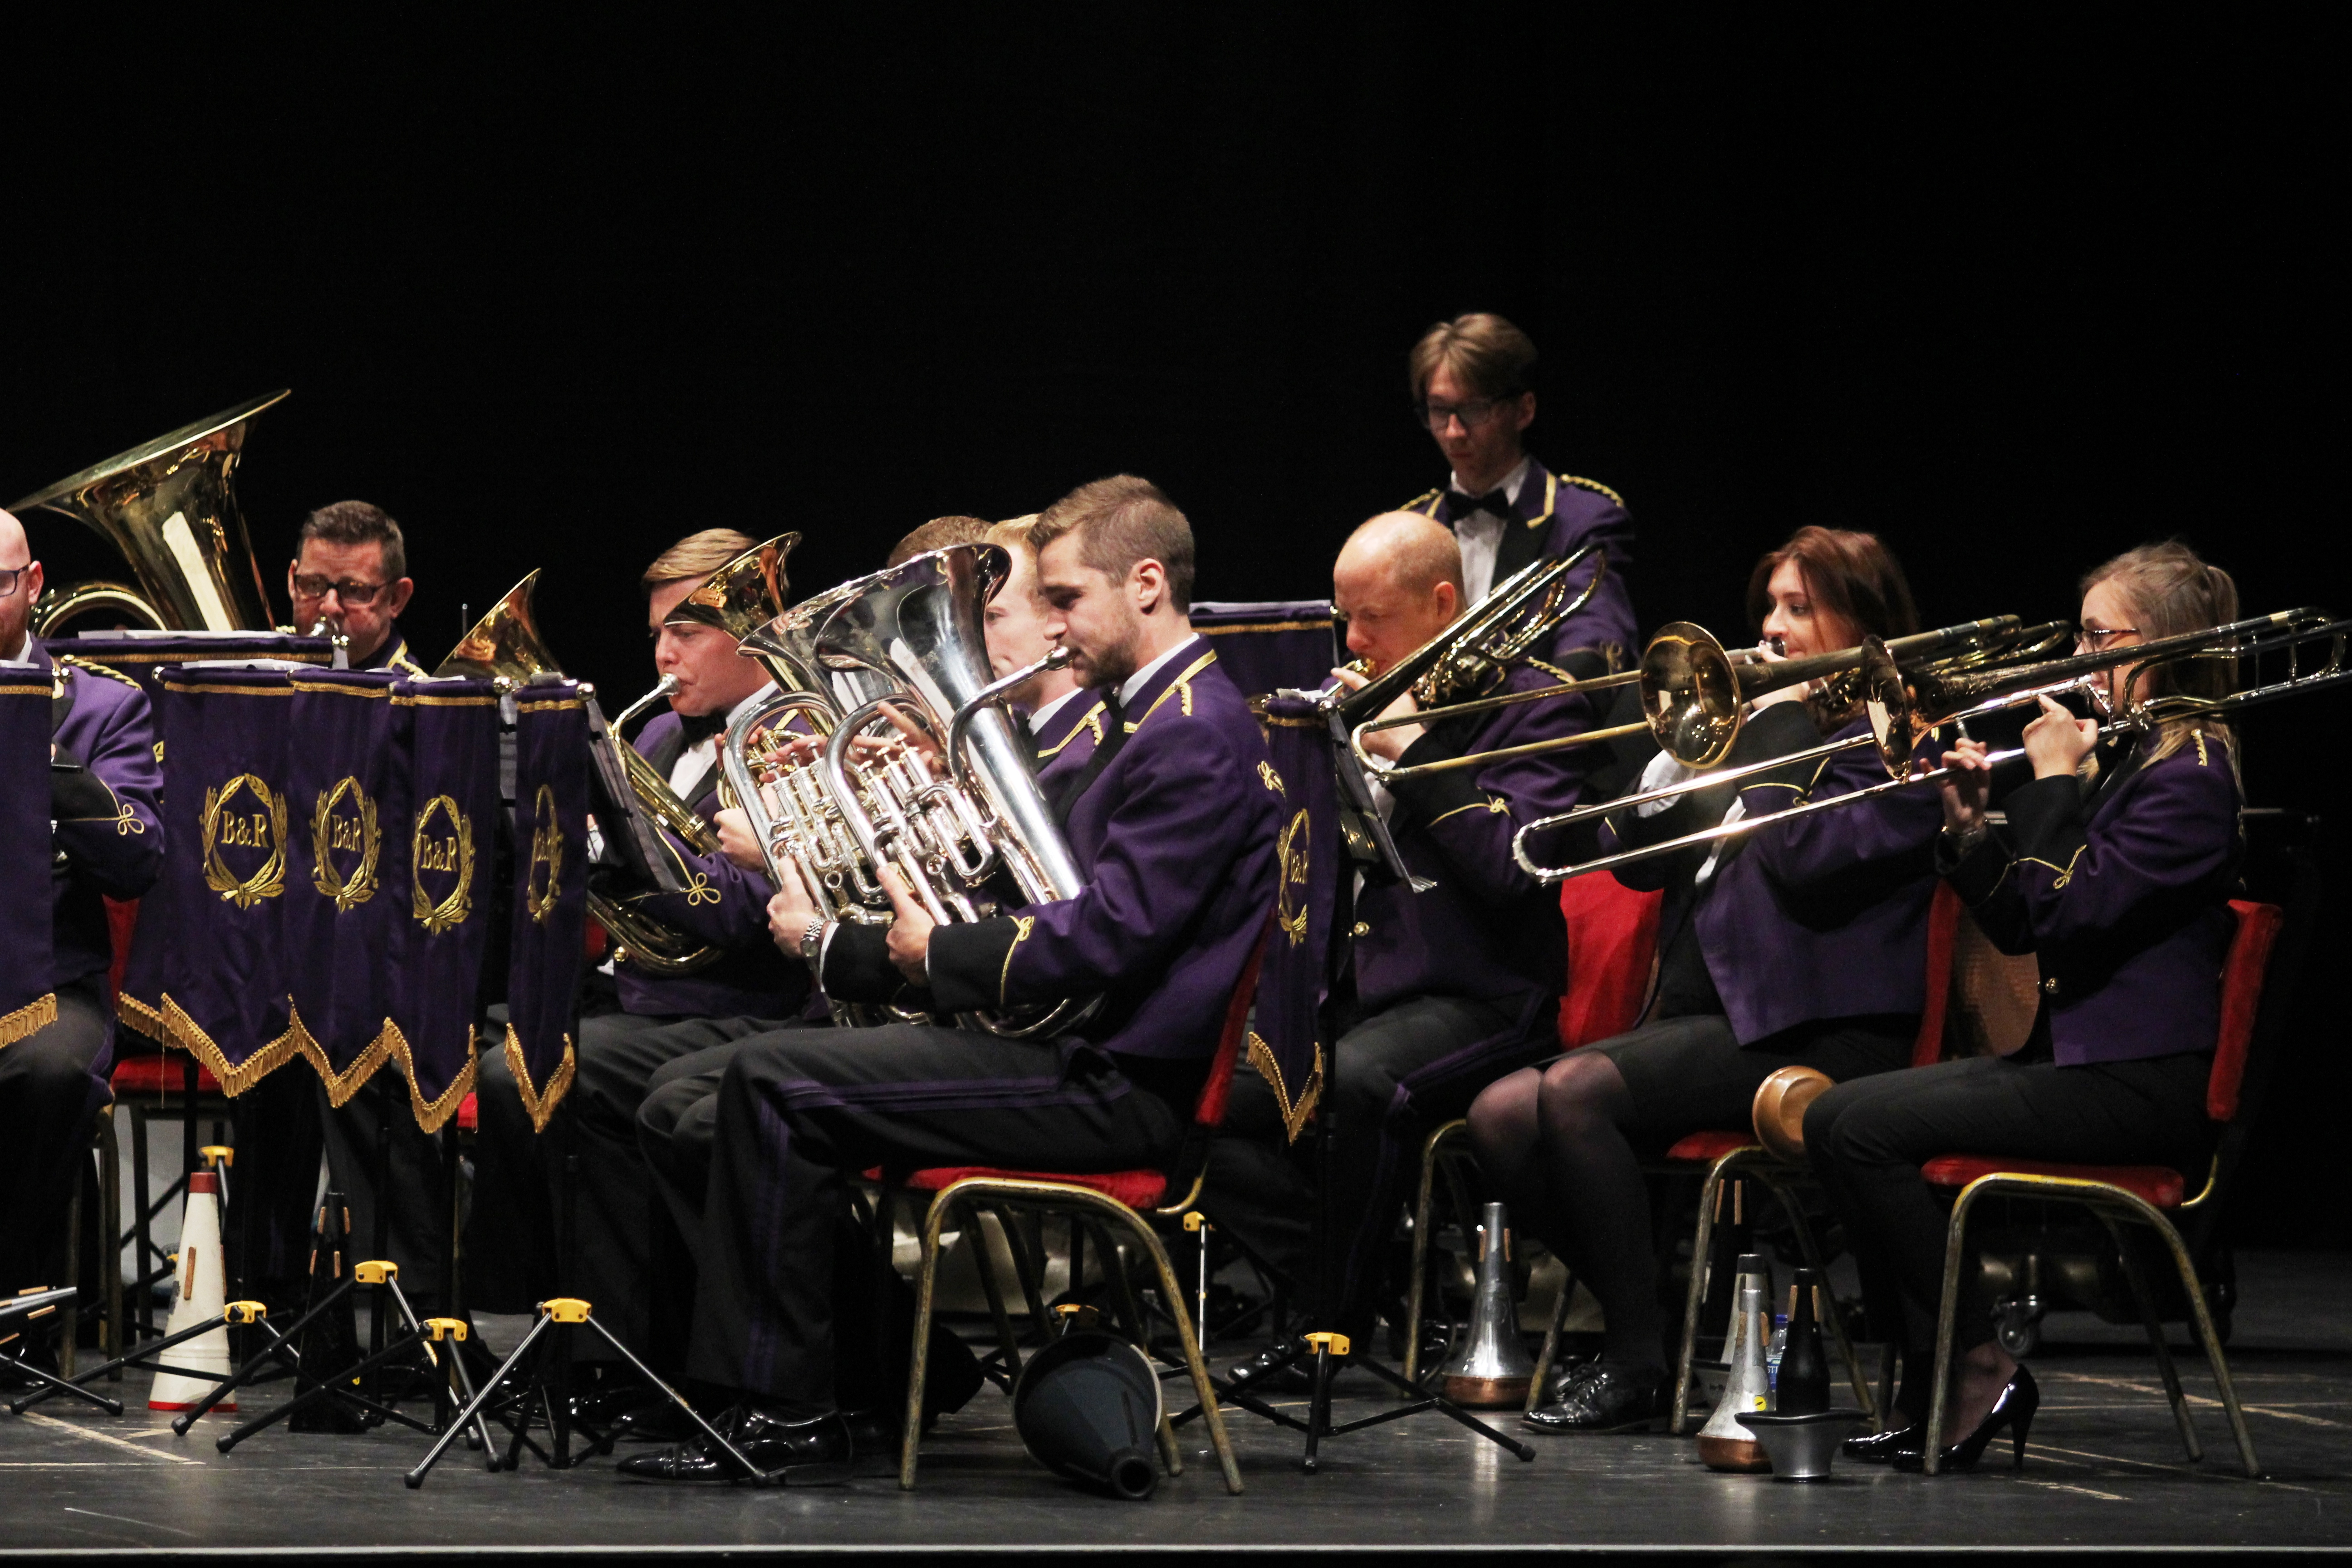 The Brighouse & Rastrick Band Concert